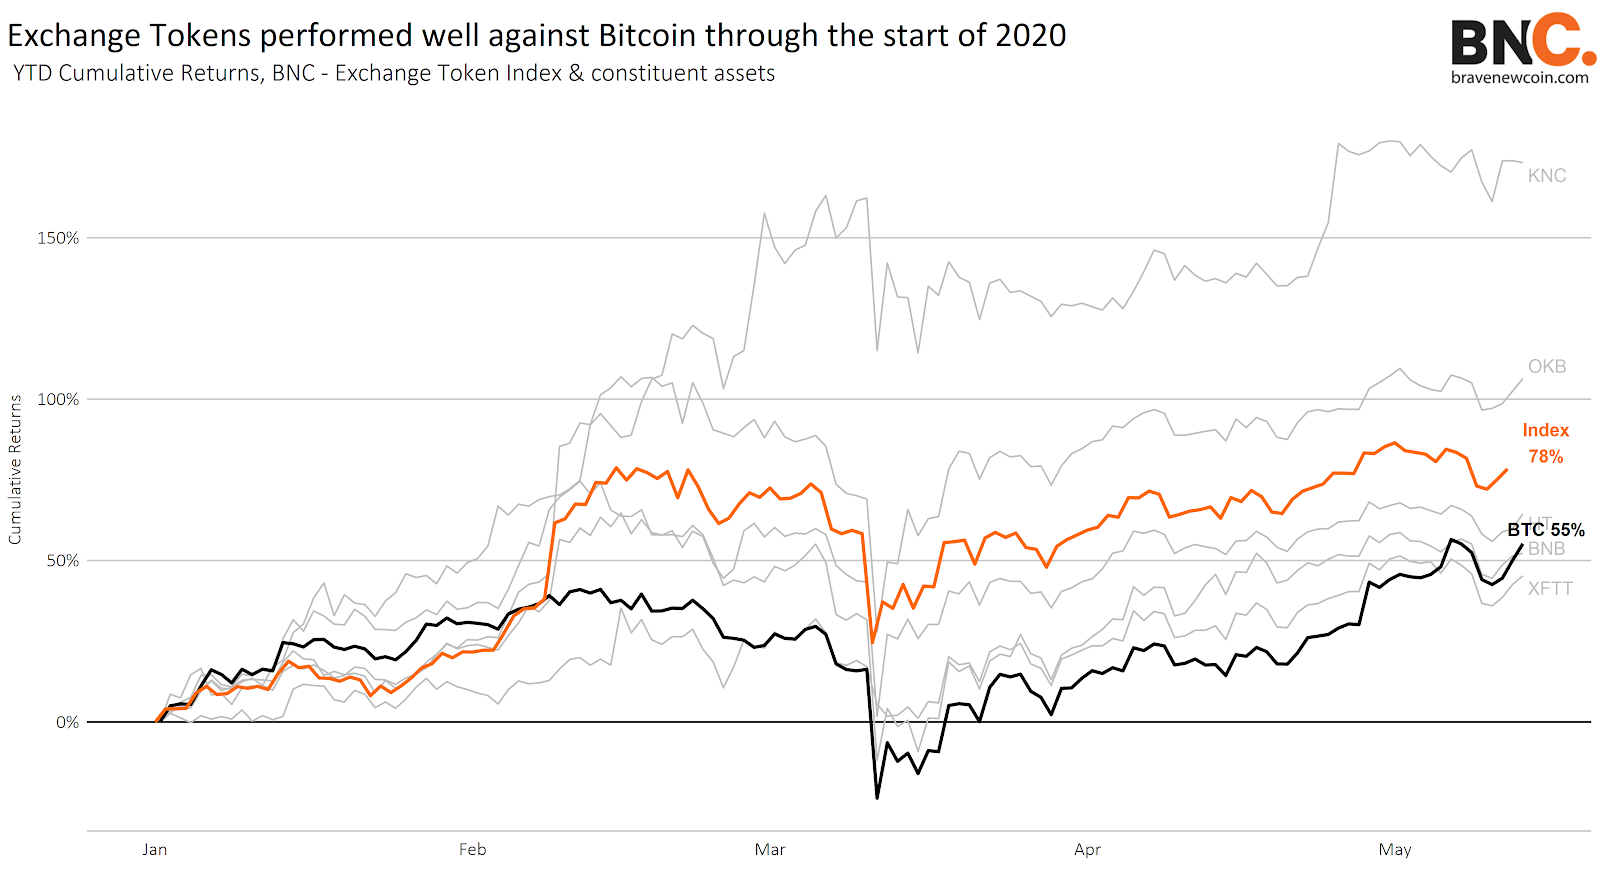 BNC Exchange Token Index outperforms Bitcoin in the first quarter of 2020 (2)